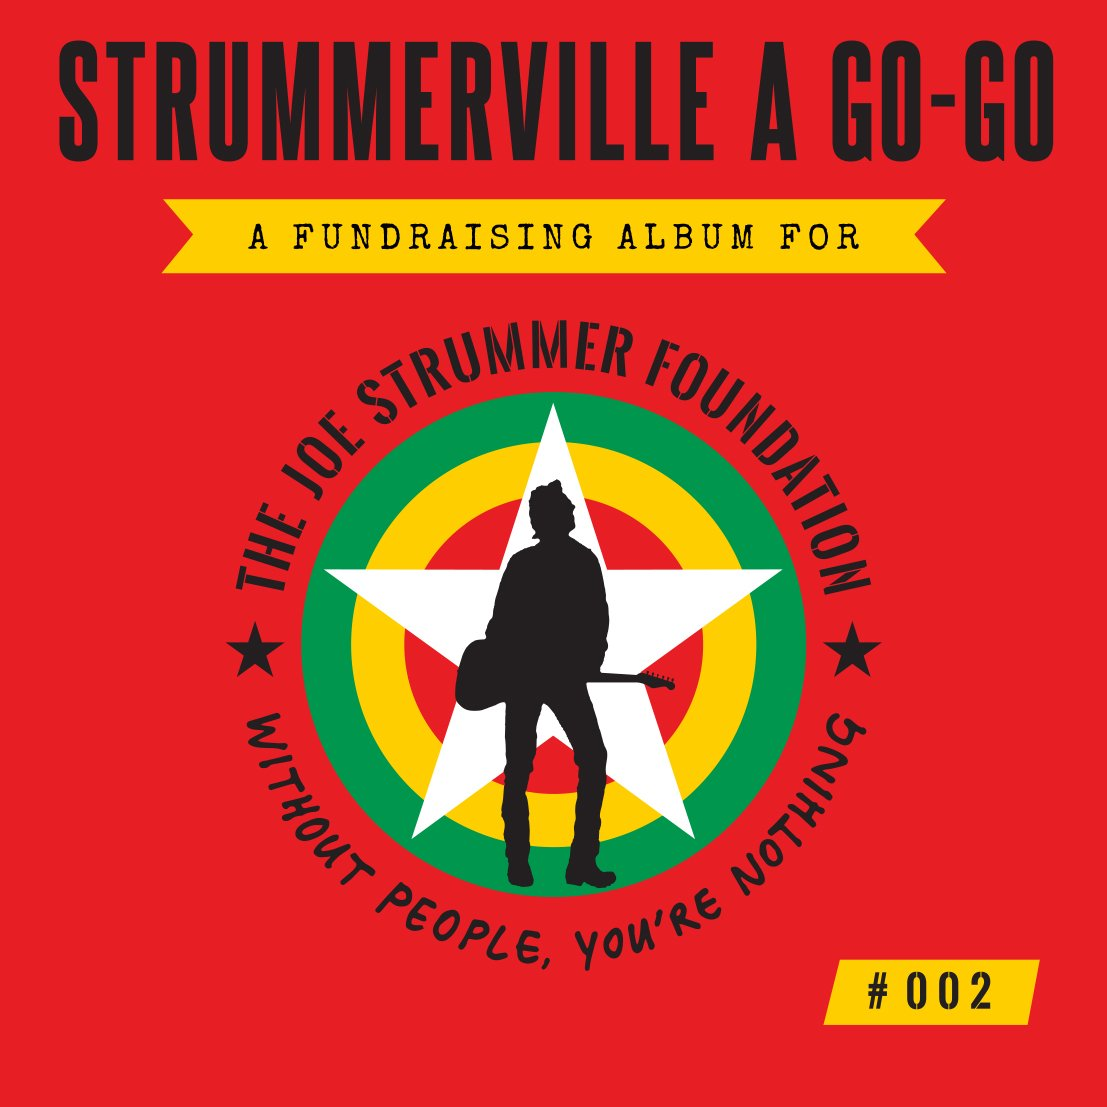 Excited to announce our 2nd #fundraising album #STRUMMERVILLEAGOGO2: https://t.co/NdafRhPTJC https://t.co/Xoqf6tNWiB